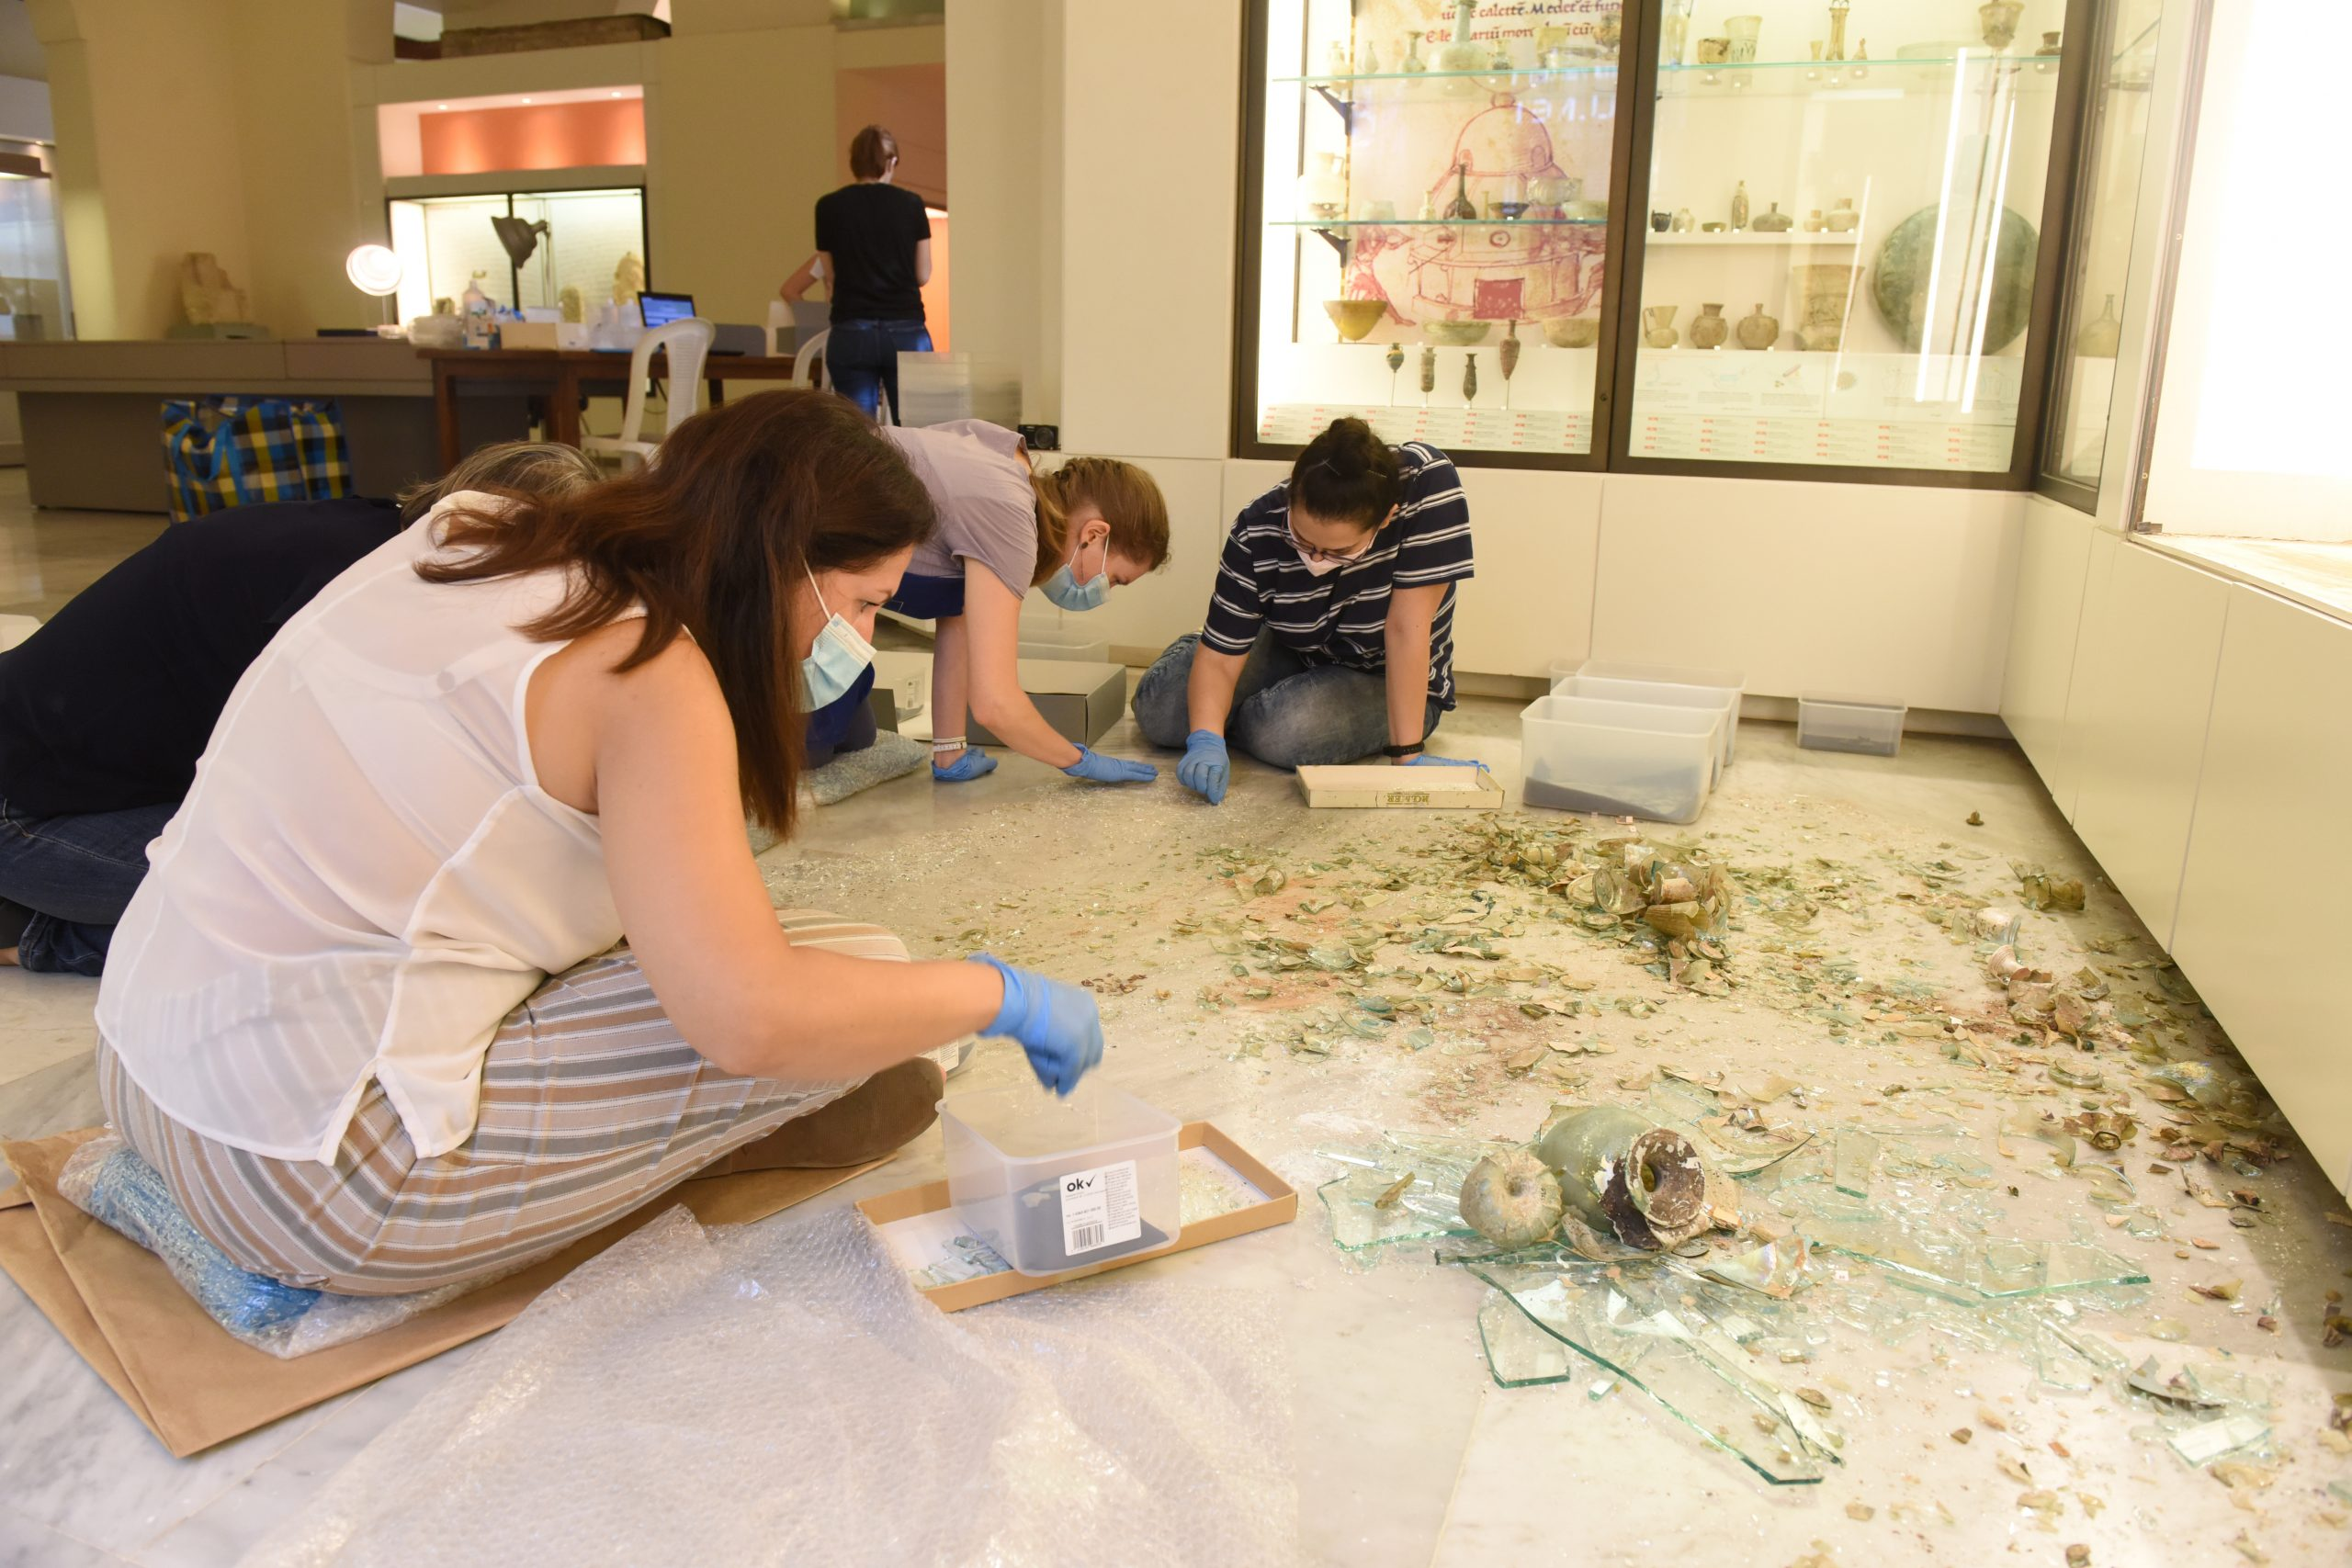 The British Museum restores ancient vessels destroyed by the Beirut Port explosion